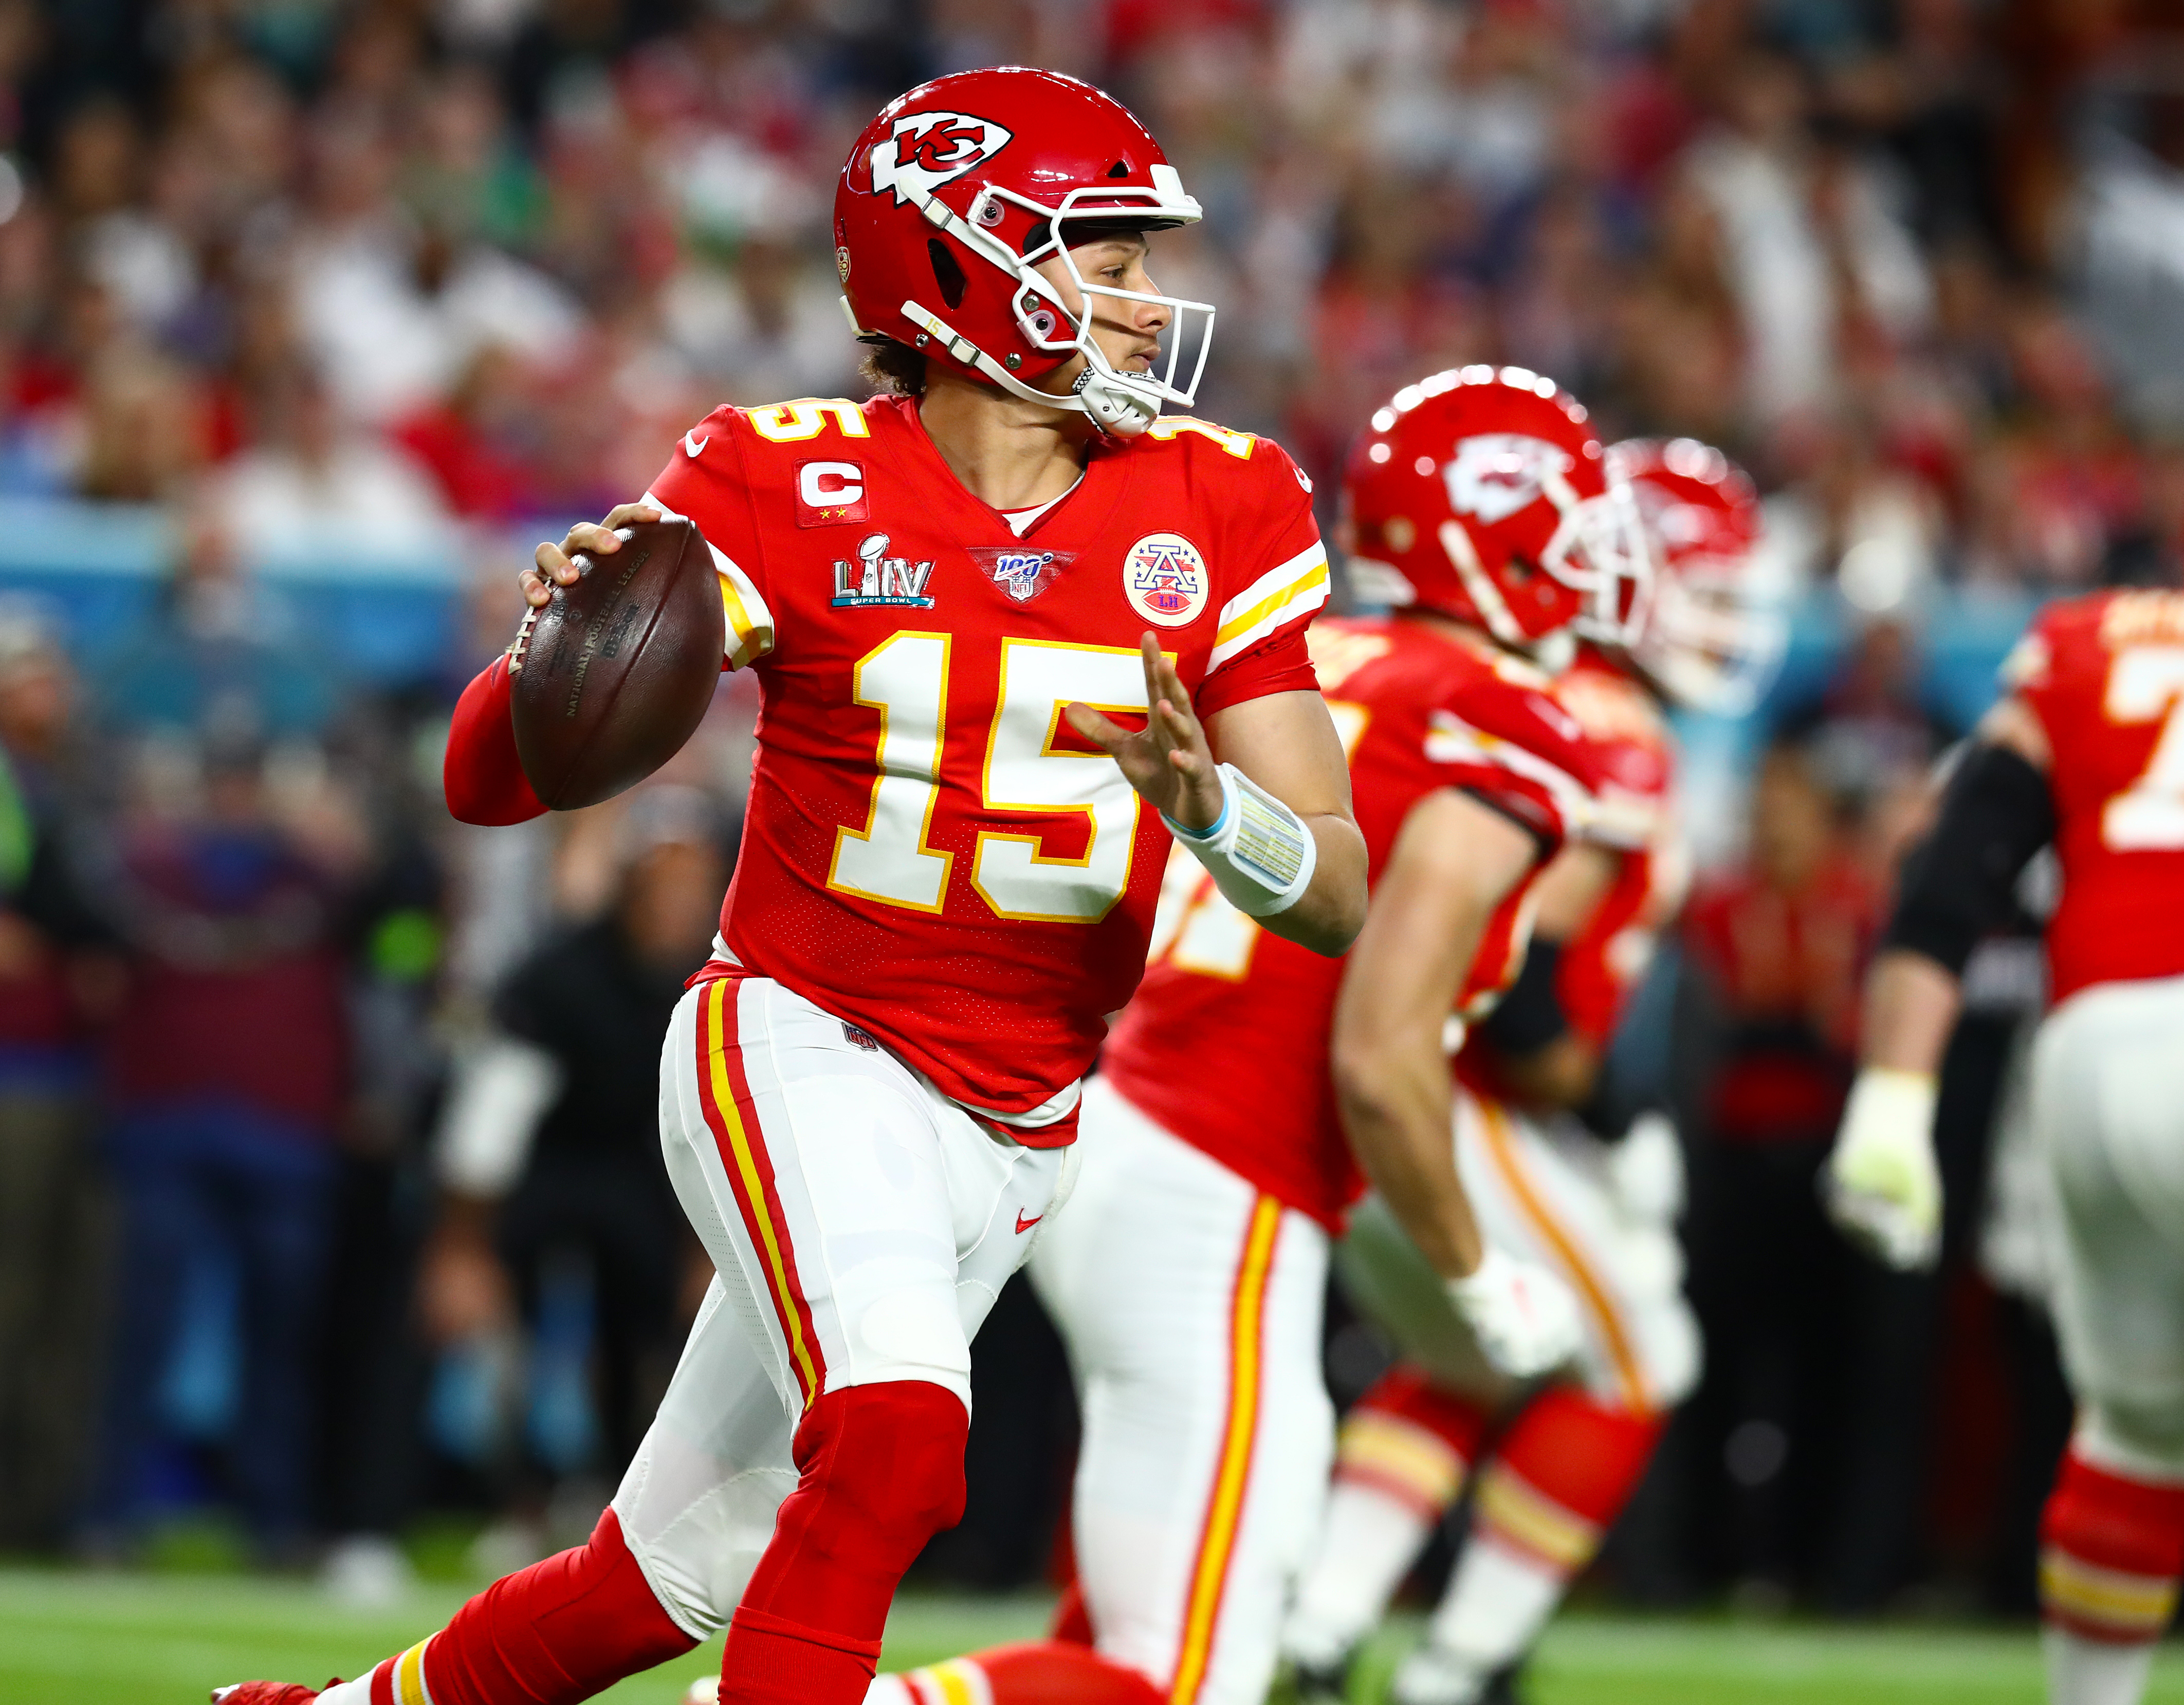 NFL: Super Bowl LIV-San Francisco 49ers vs Kansas City Chiefs